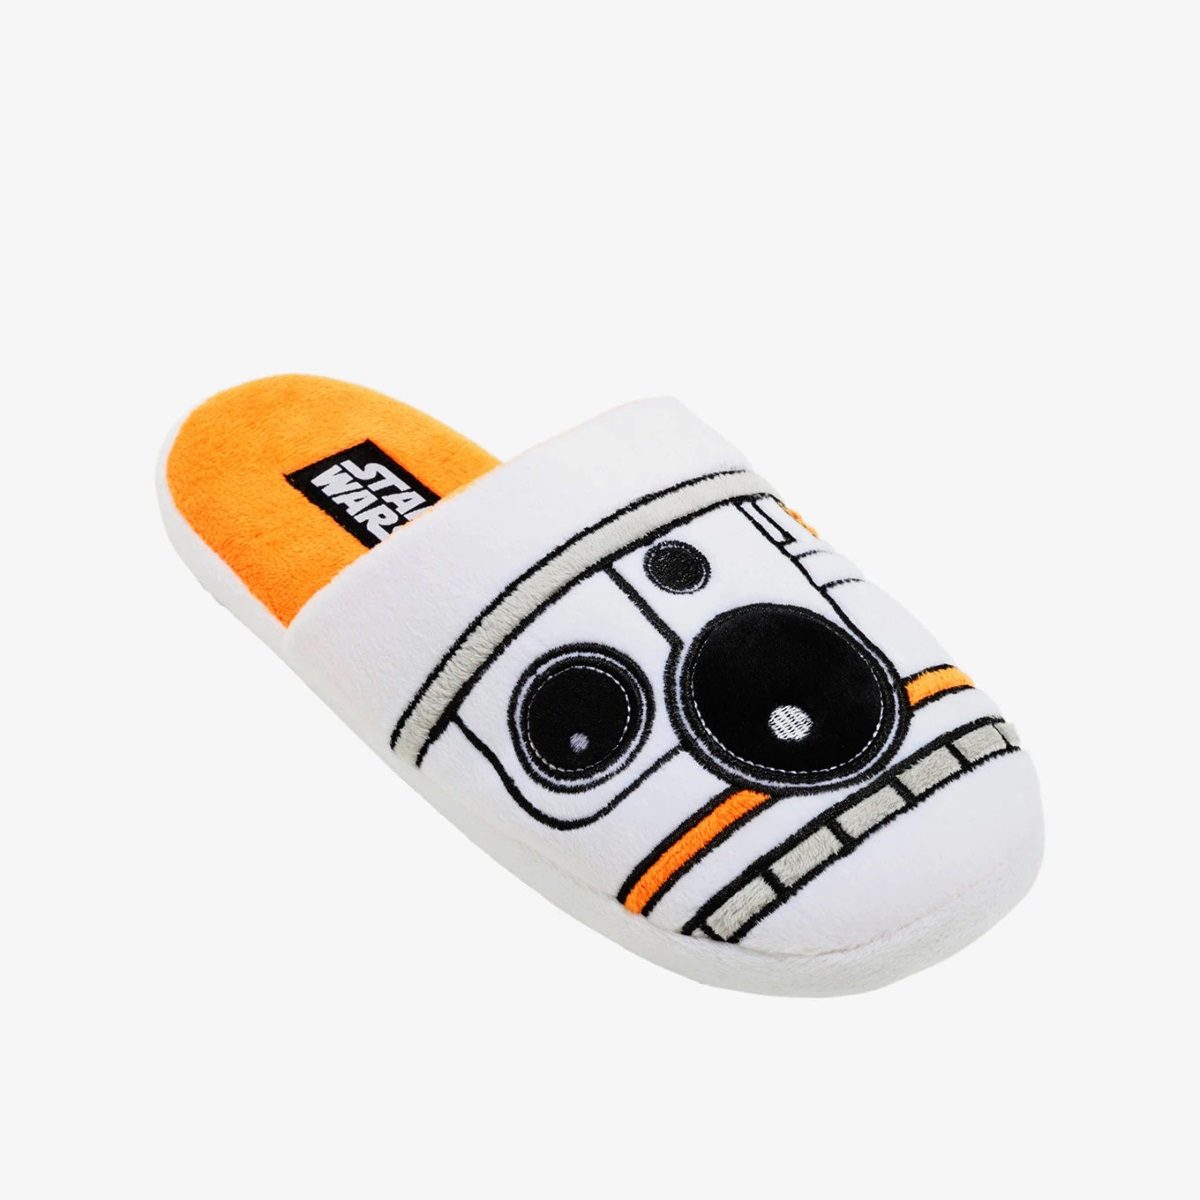 Star Wars BB-8 Slippers at Box Lunch